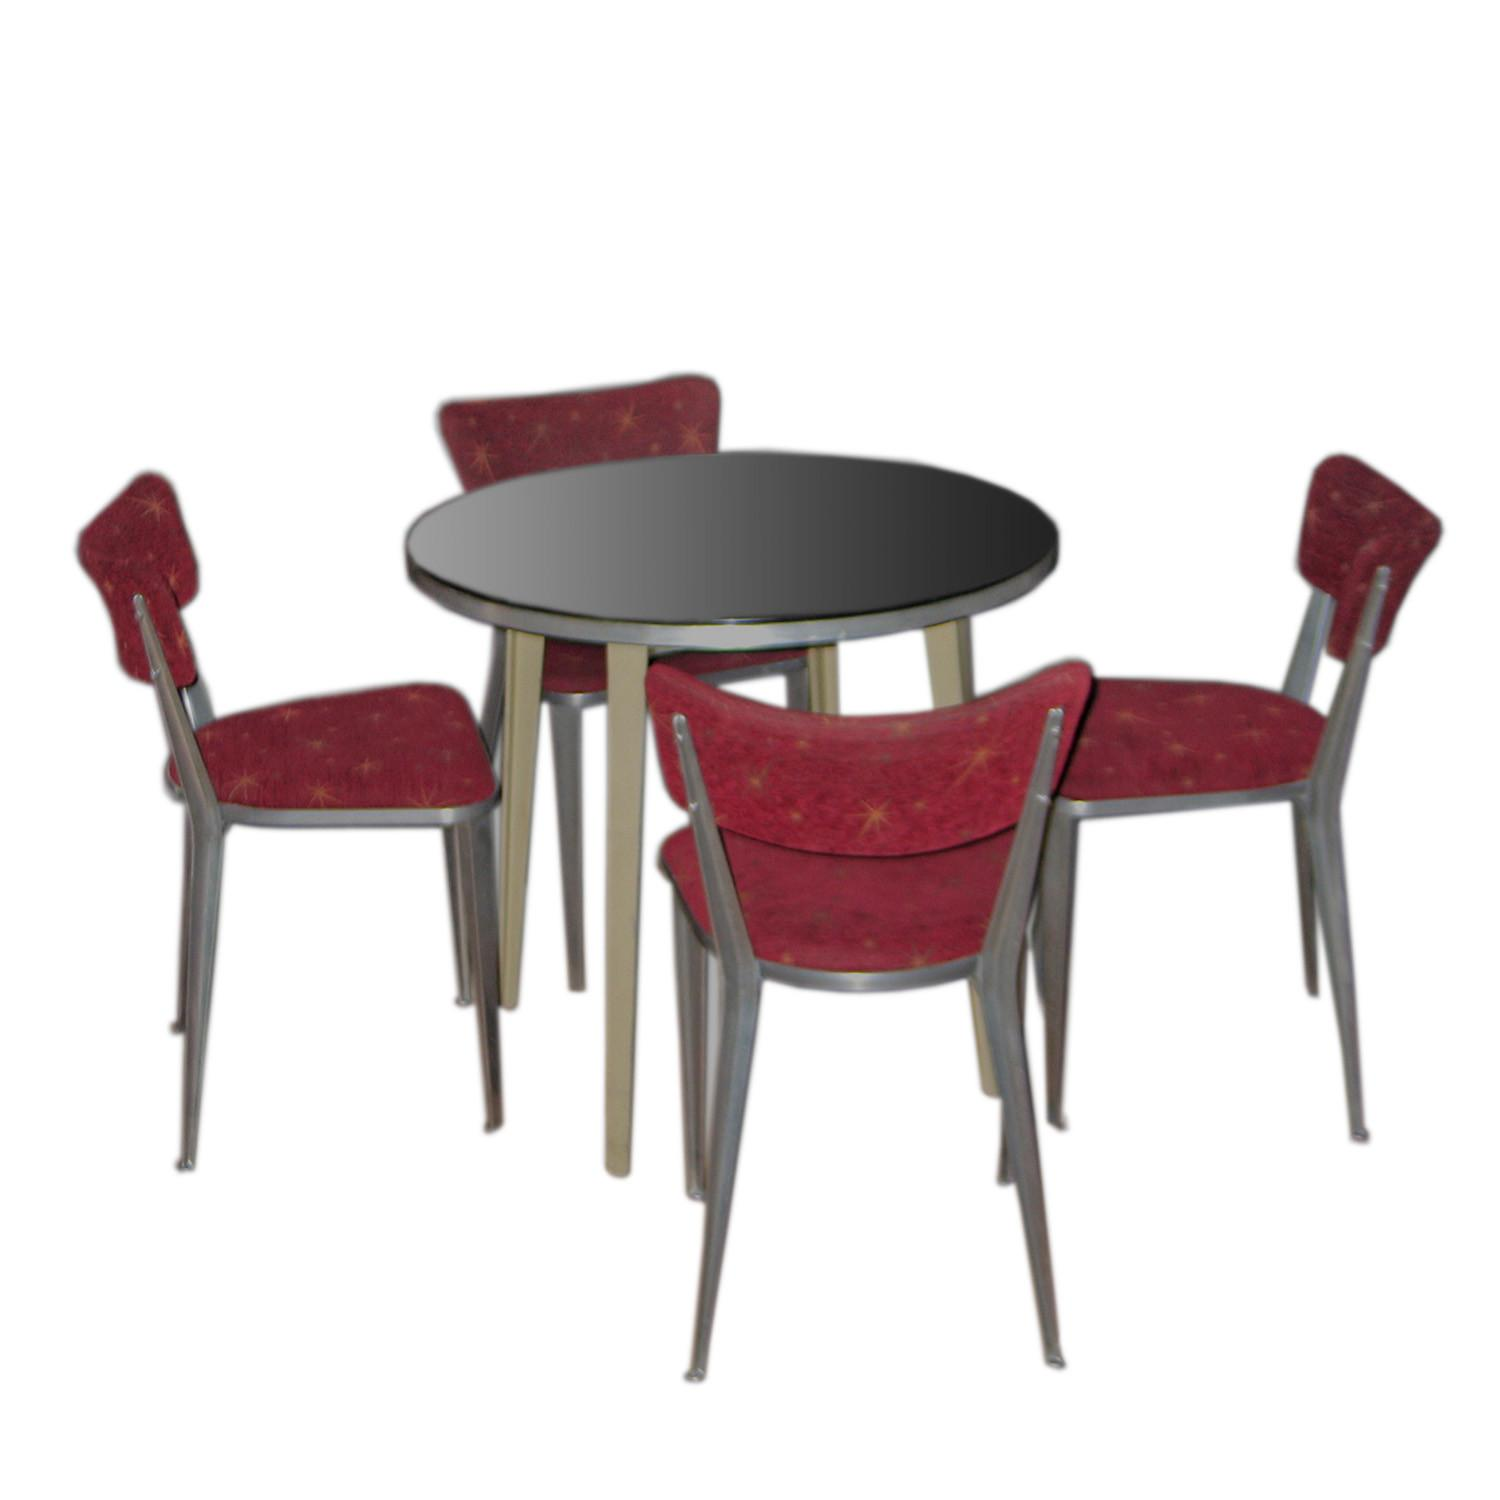 Rare Ernest Race Table Set Chairs Modernism